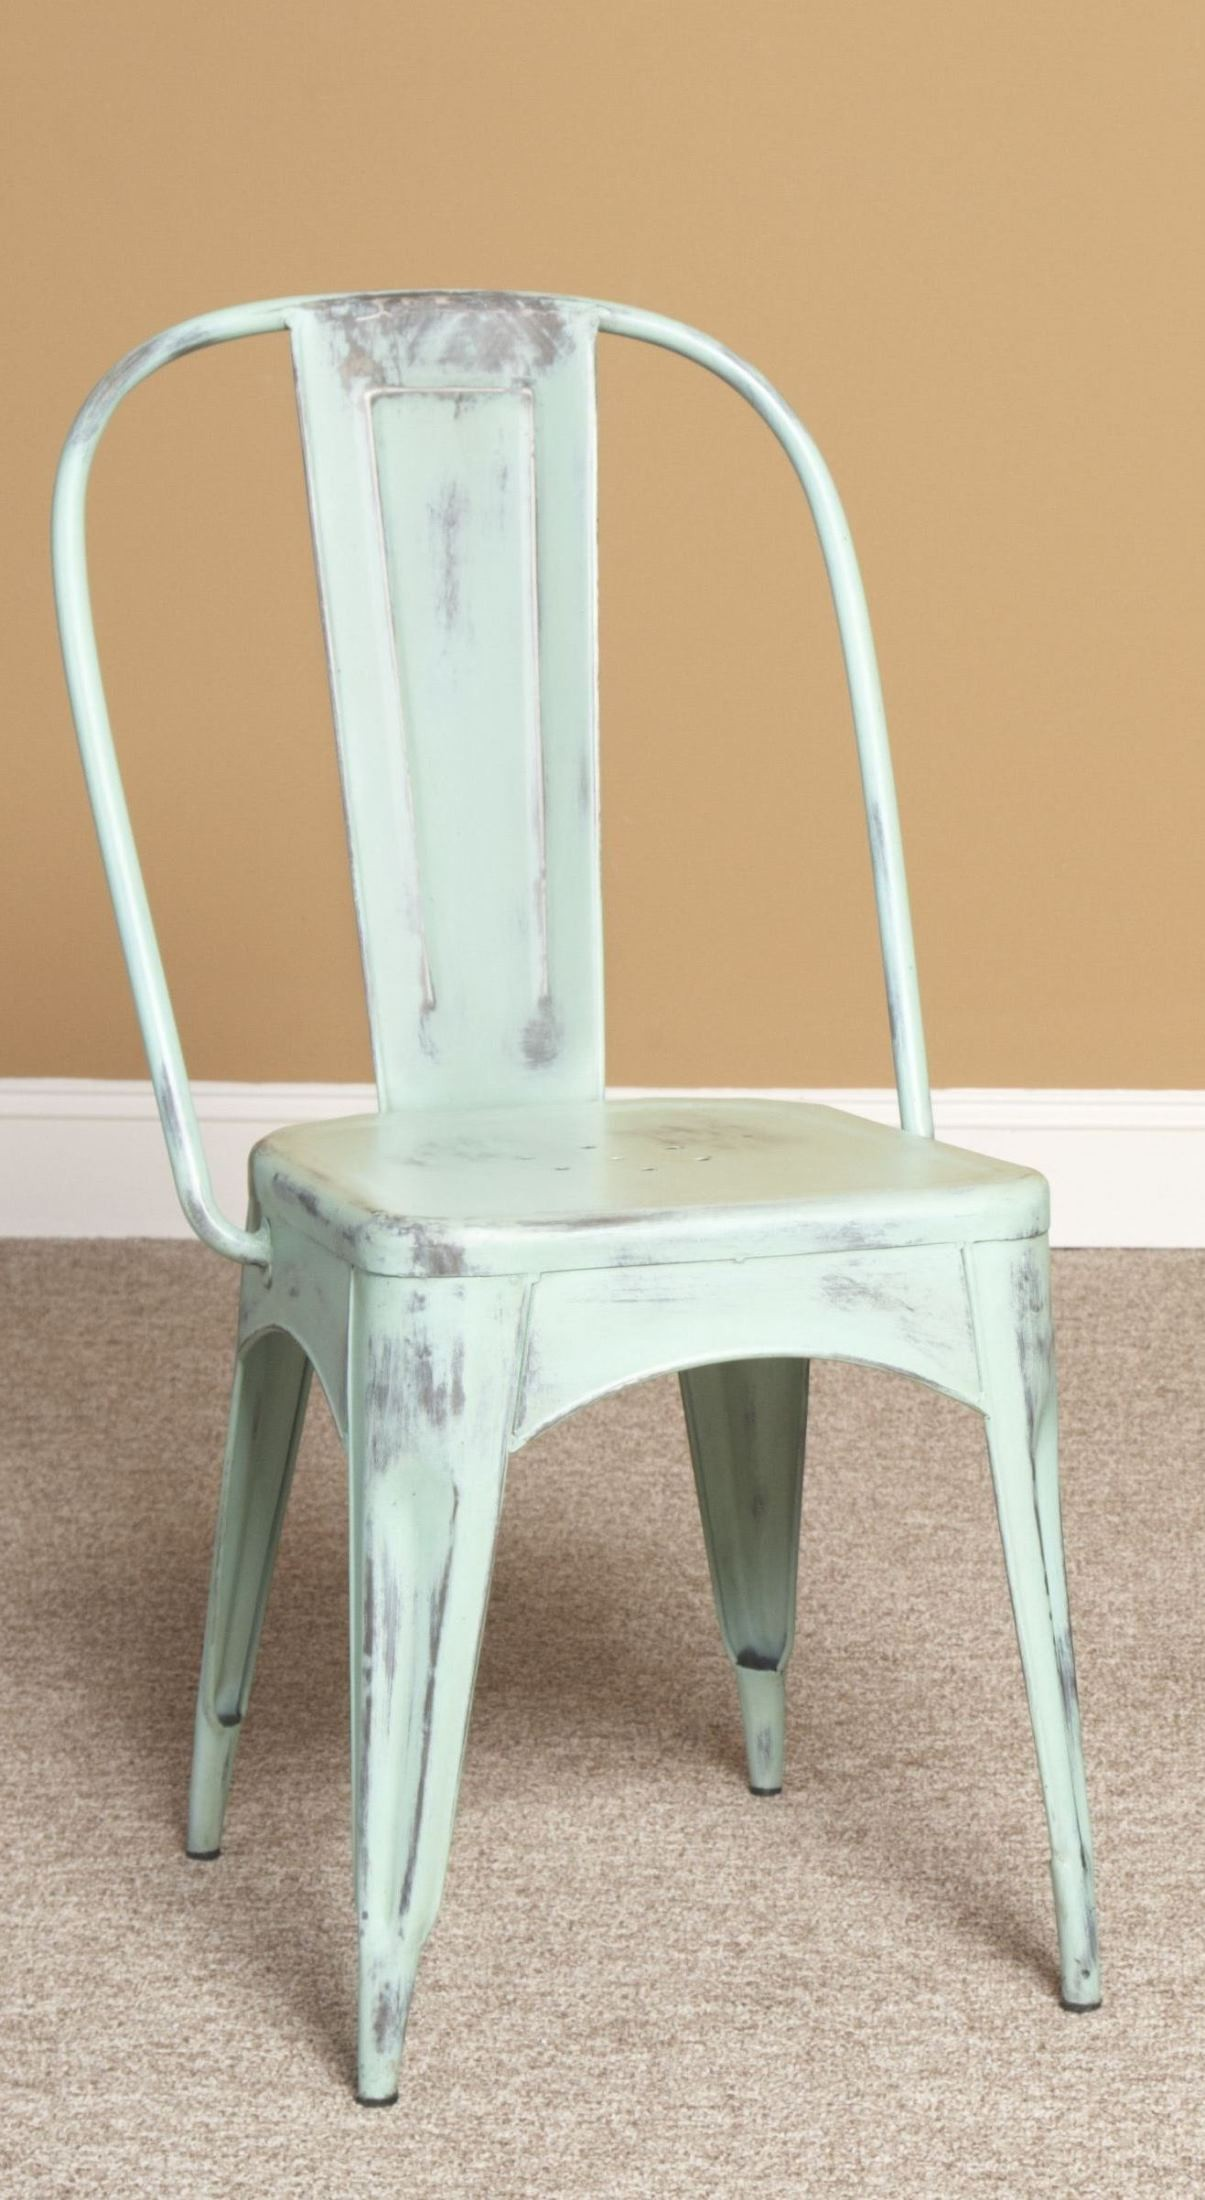 Turquoise Side Chair Timbuktu Turquoise Side Chair Set Of 2 From Largo D355